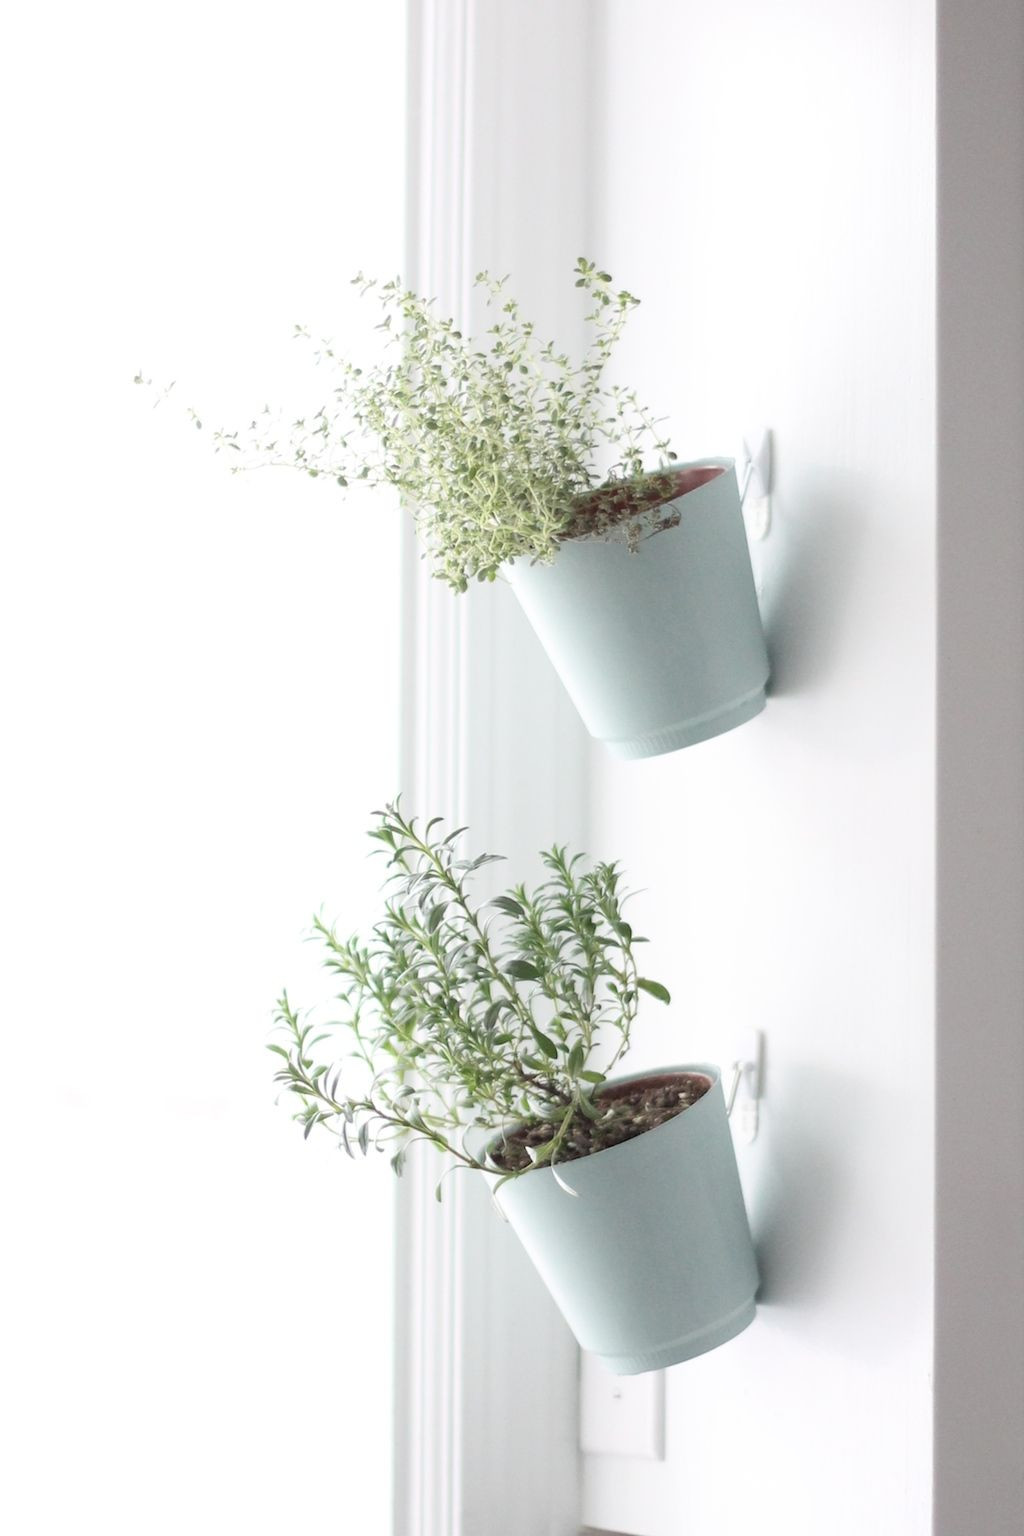 small wall mounted vases of diy hanging herb garden future home hanging mugs on kitchen window in diy hanging herb garden future home hanging mugs on kitchen window sill with spoon markers